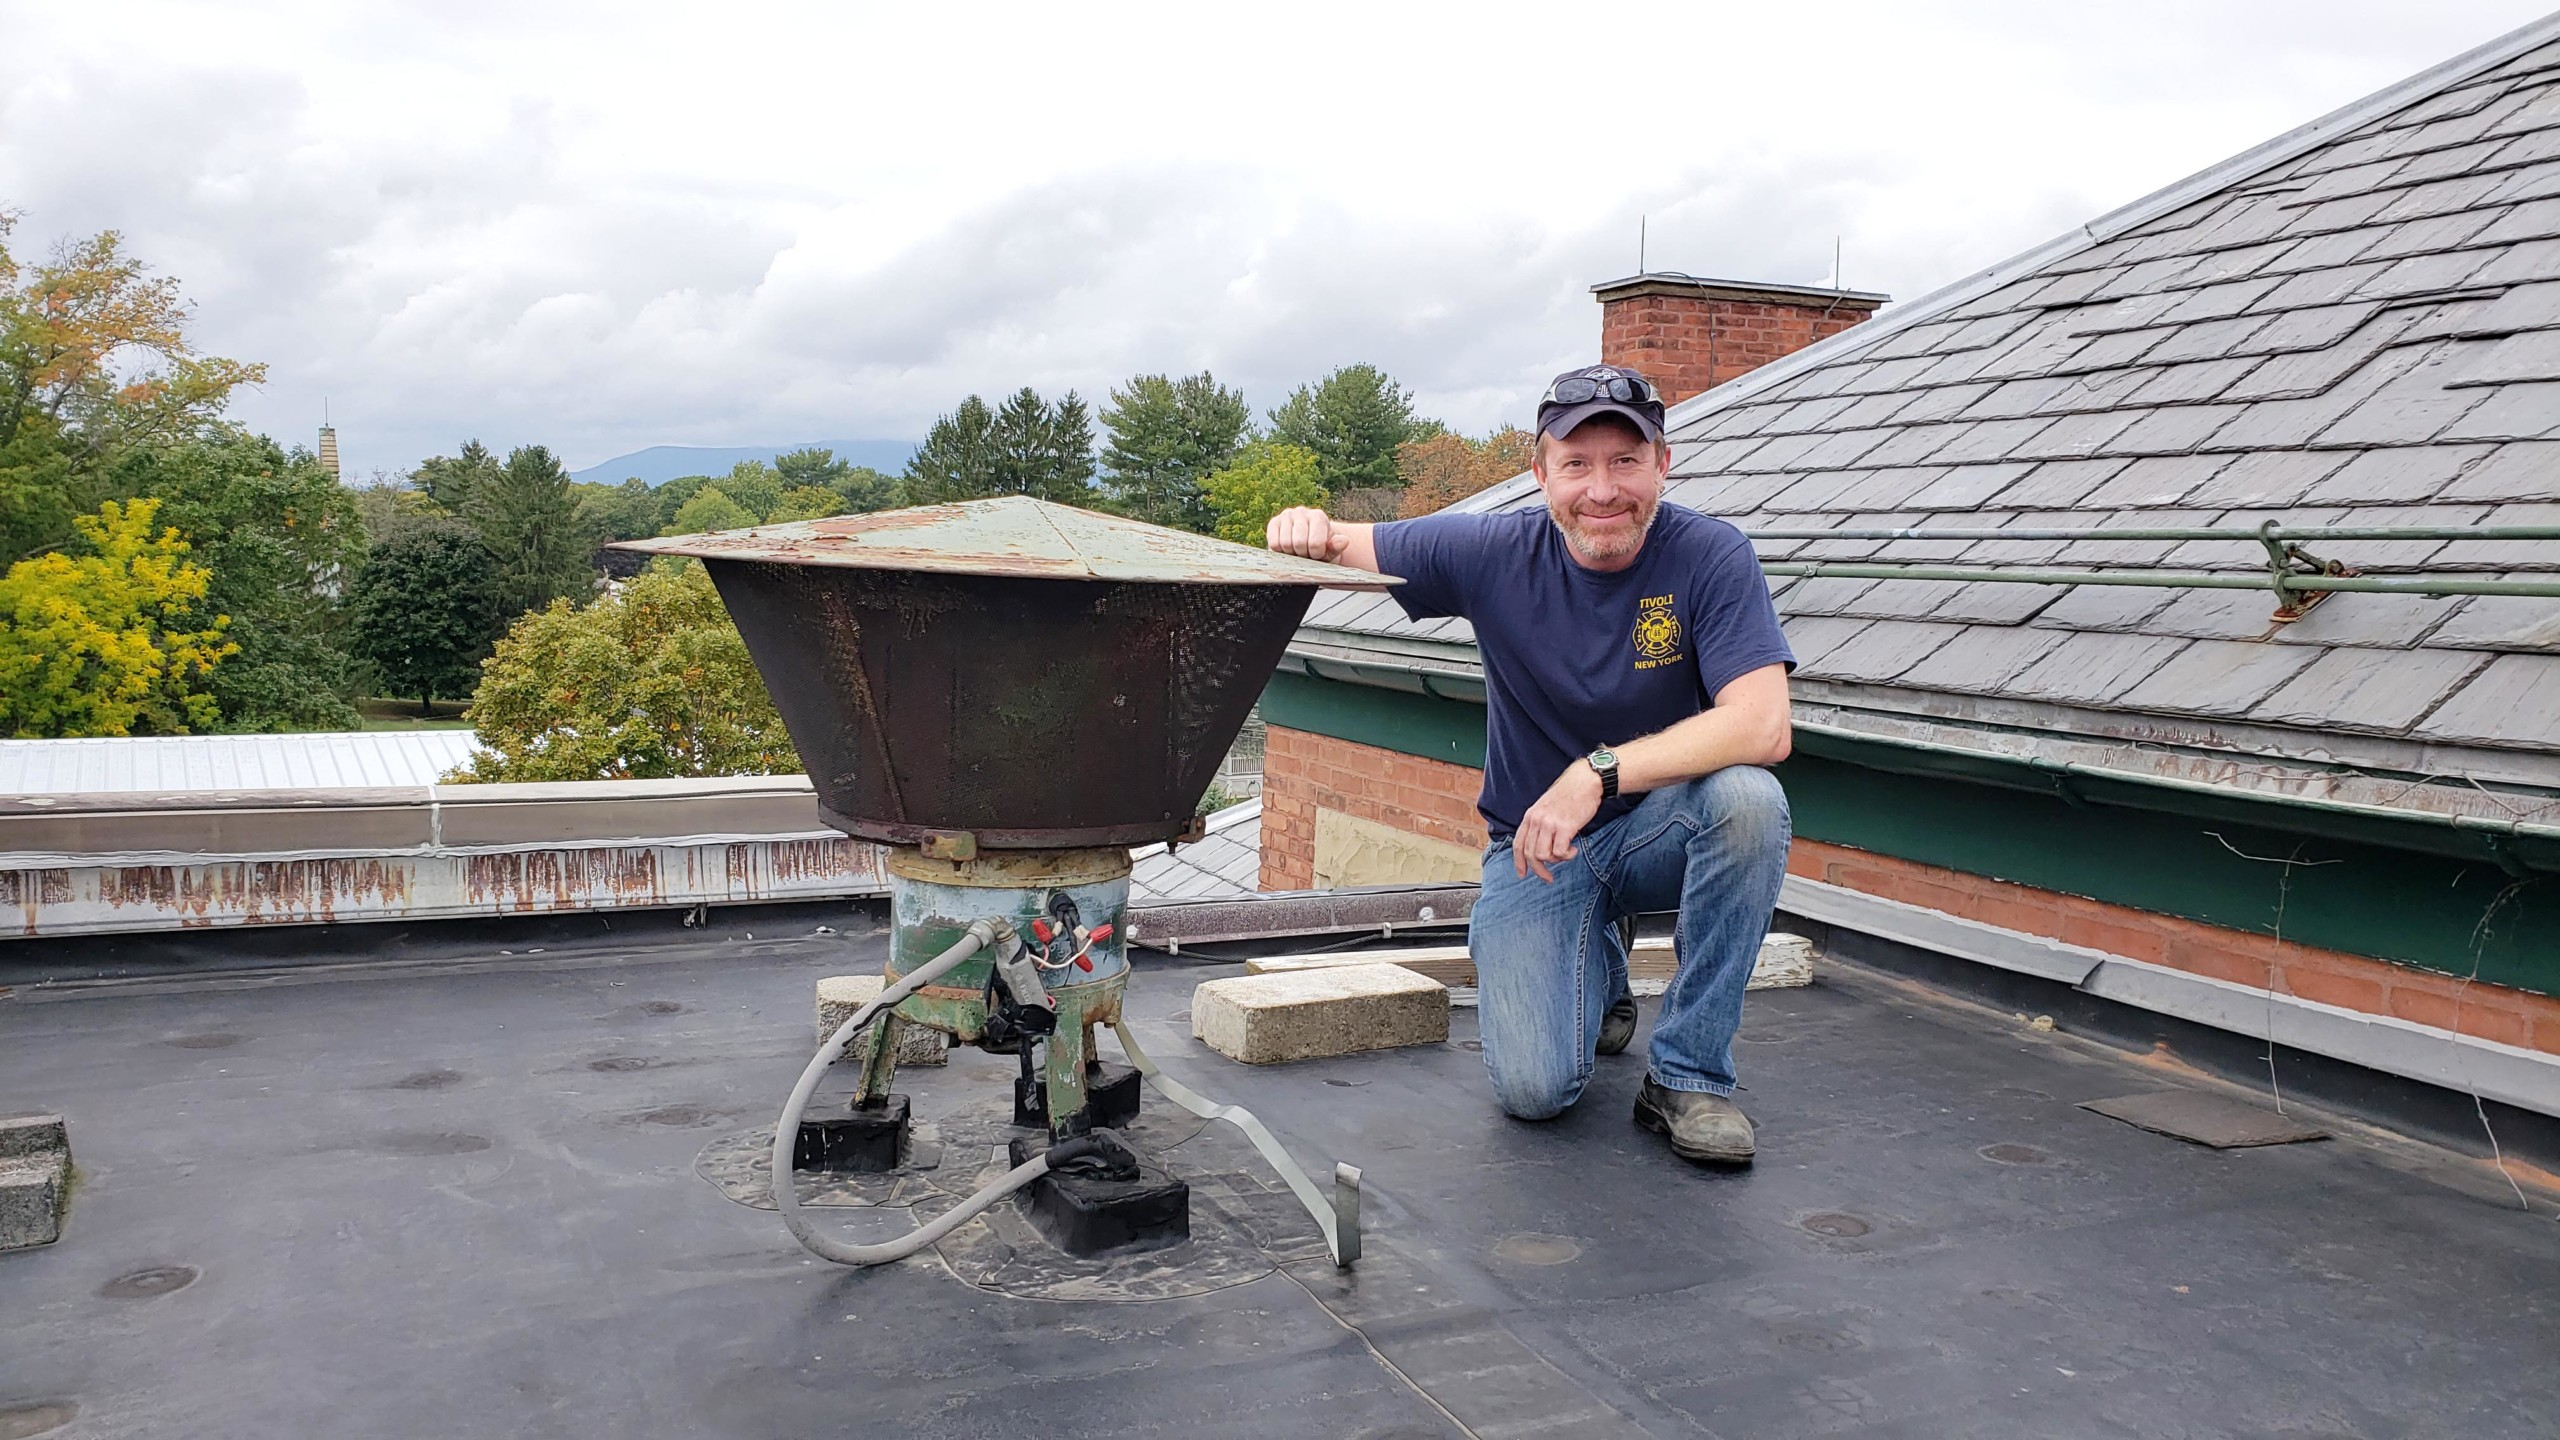 Joel Griffith, Mayor of Tivoli, with the Tivoli siren / Hudson Valley Observer